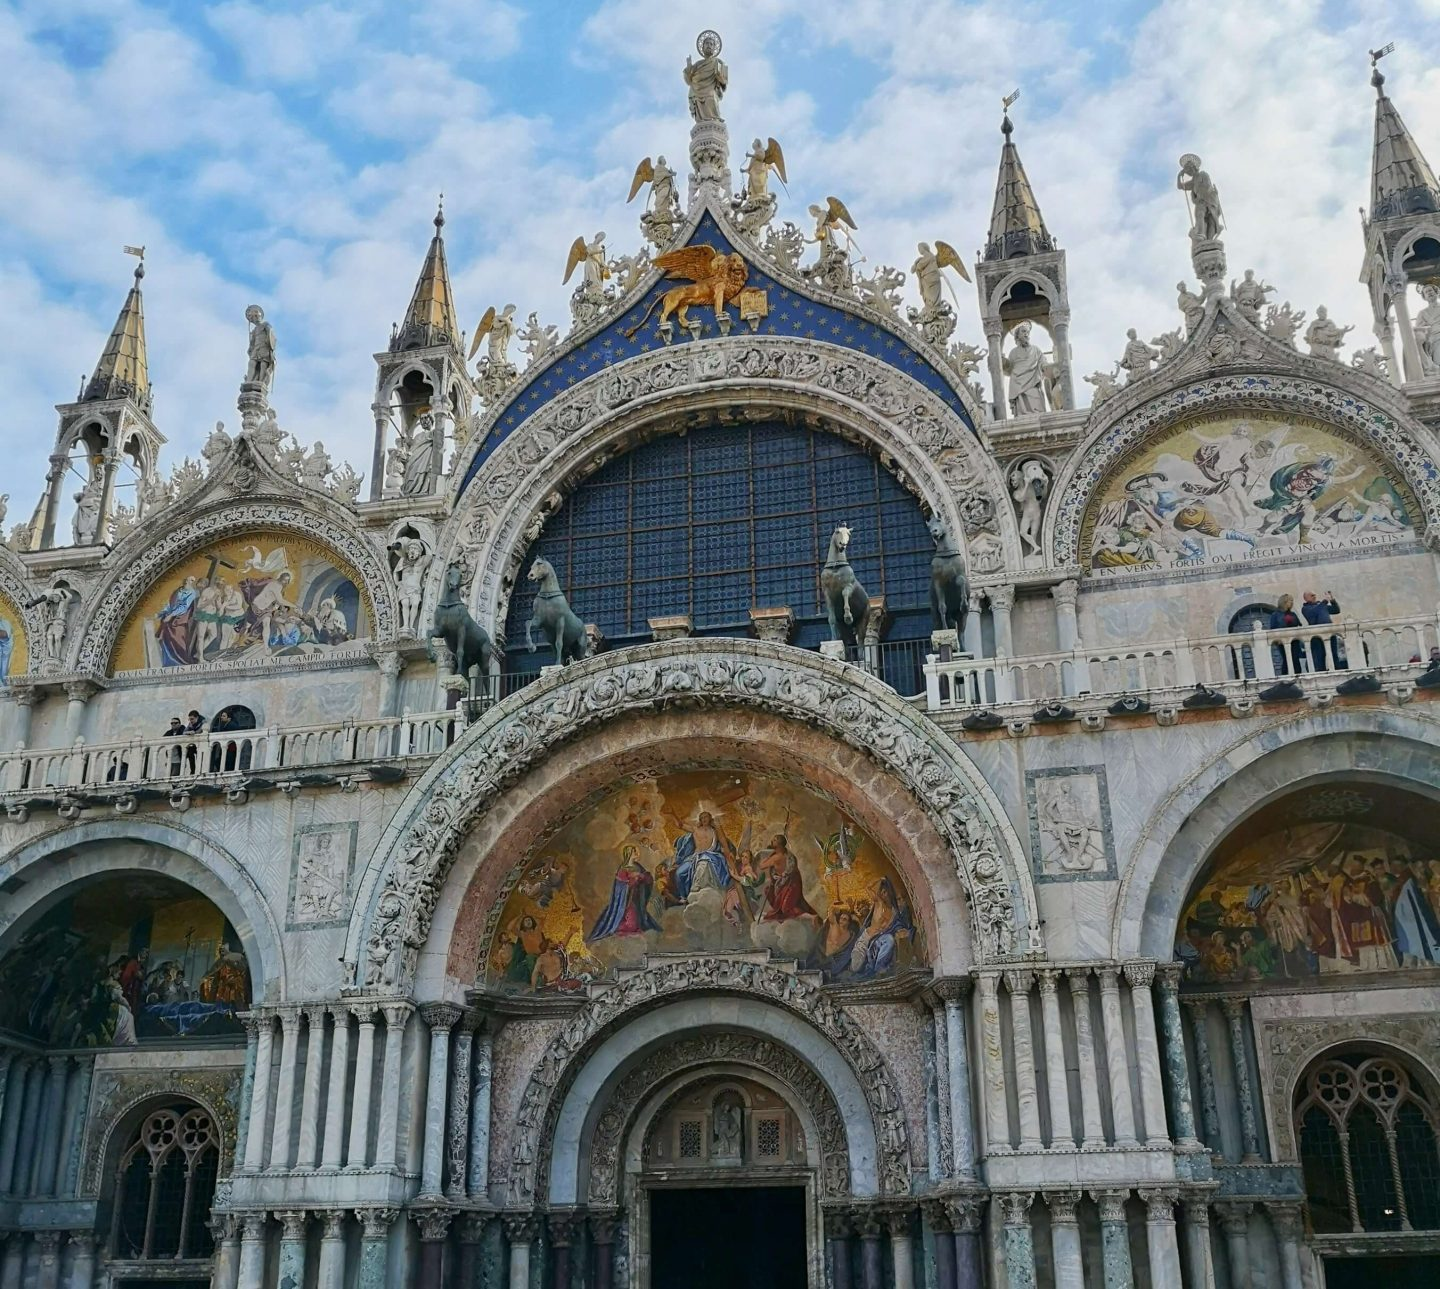 New Shades of Hippy - Anneka Nicholls - travel blog and green living - 24 hours in Venice, Italy - Saint Mark's Basilica, Venice